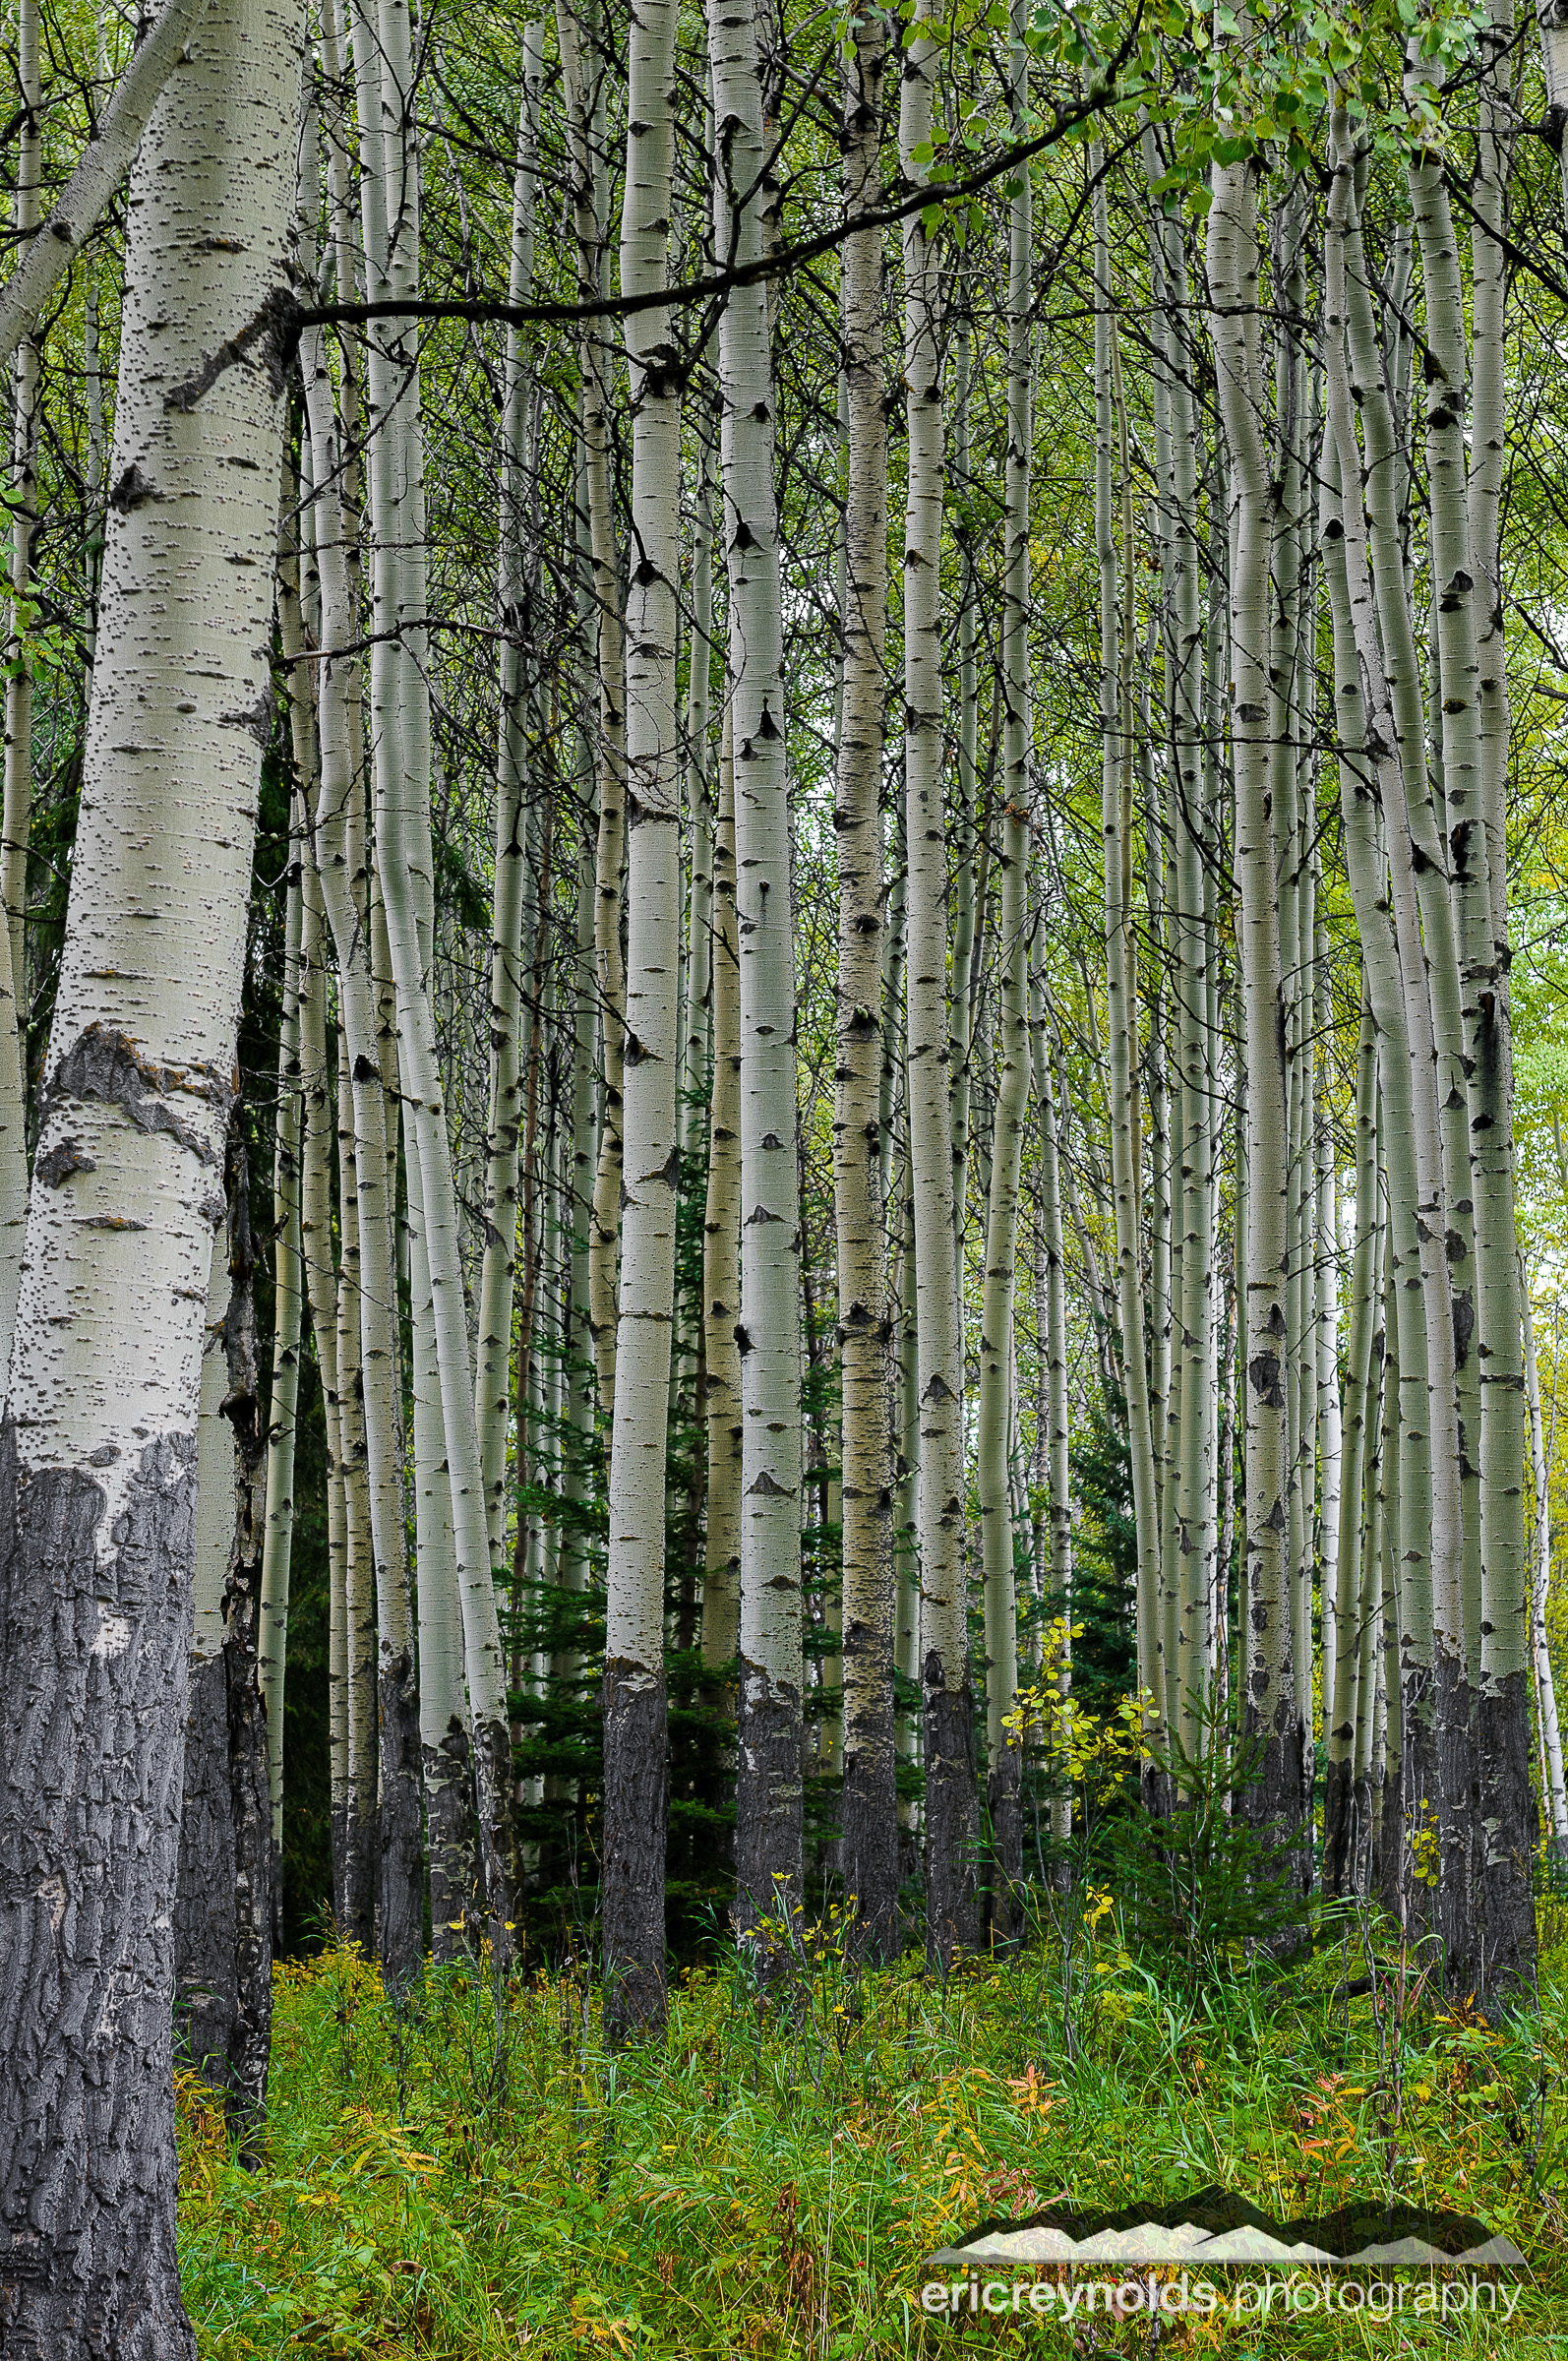 Aspen Grove by Eric Reynolds - Landscape Photographer